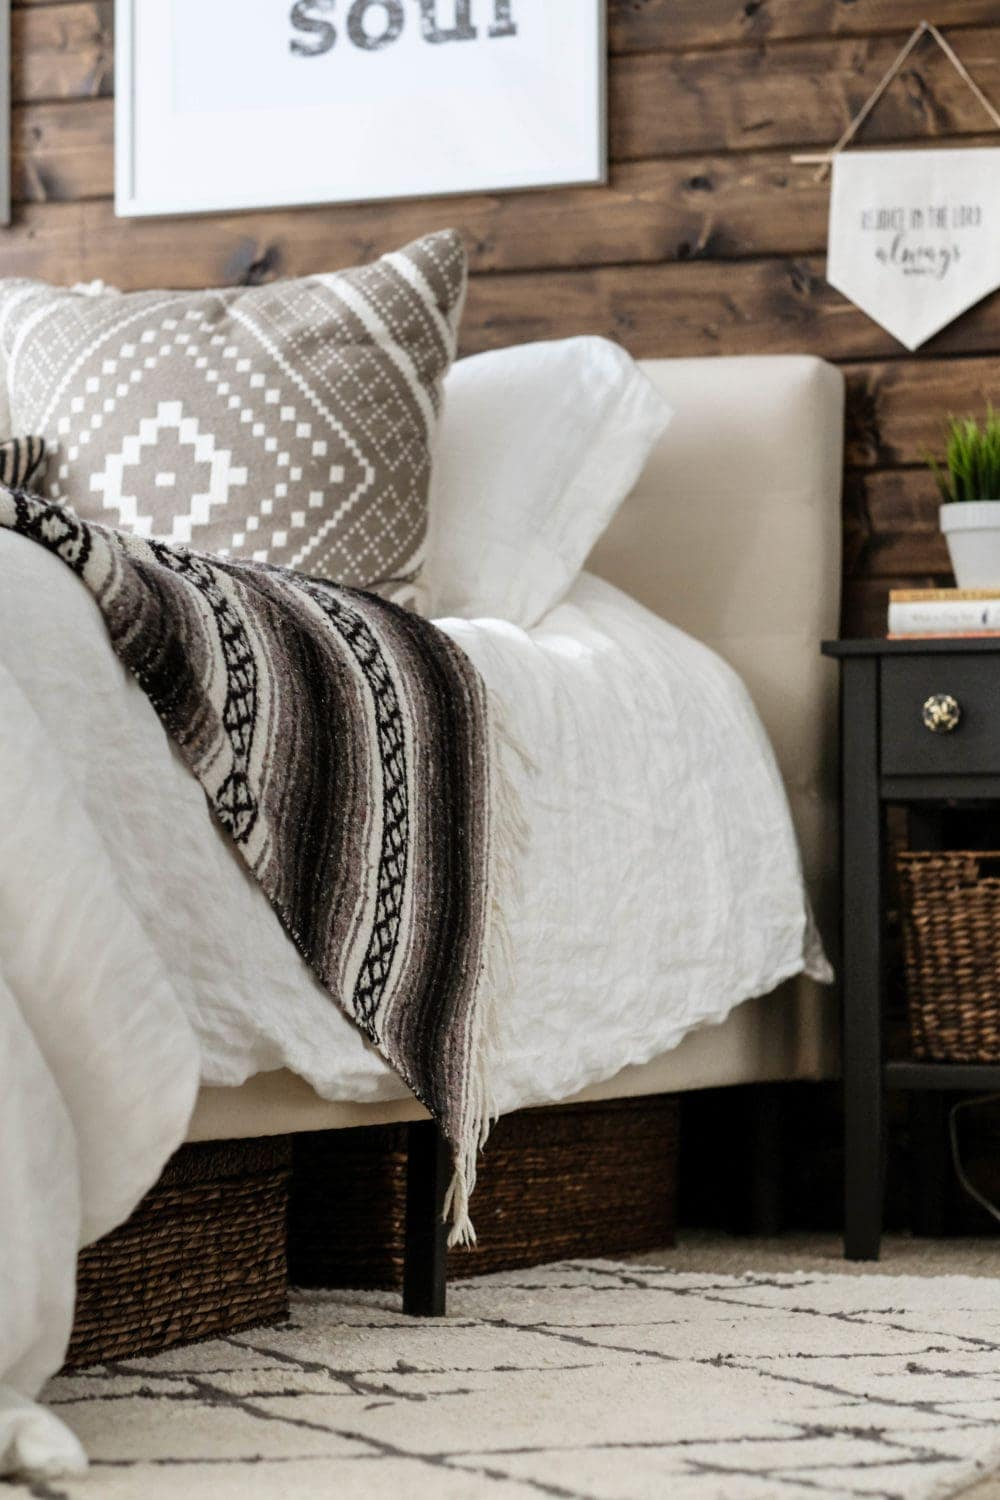 A Modern Rustic Bedroom | See how to blend two styles to create a modern rustic bedroom that is oh so cozy | Joyfully Growing Blog